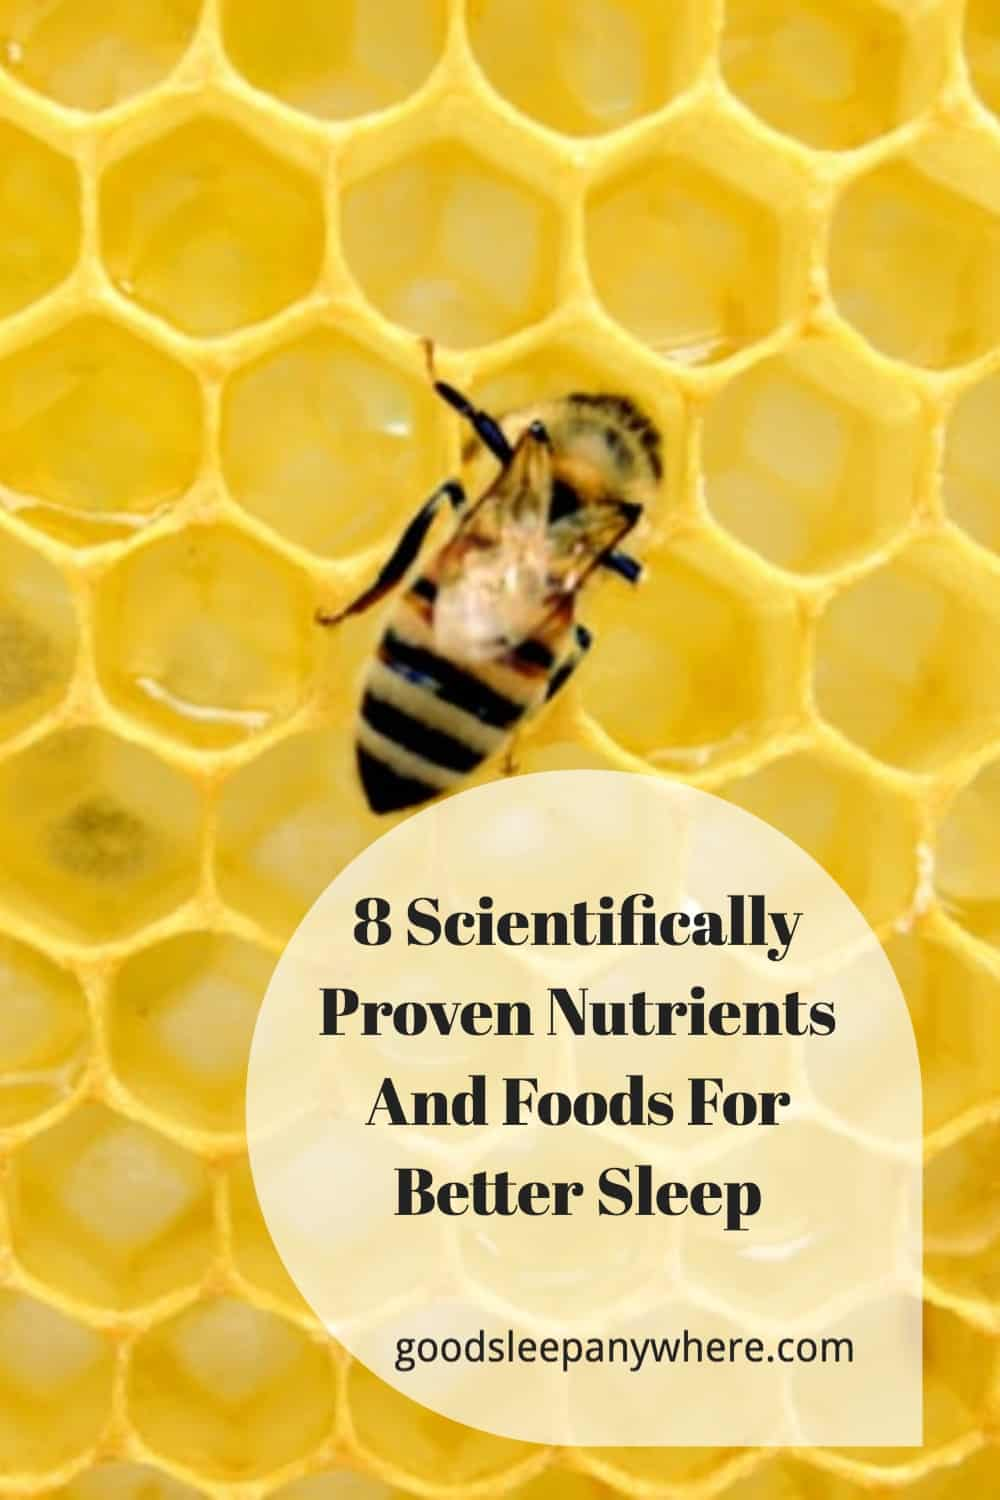 8-Scientifically-Proven-Nutrients-And-Foods-For-Better-Sleep